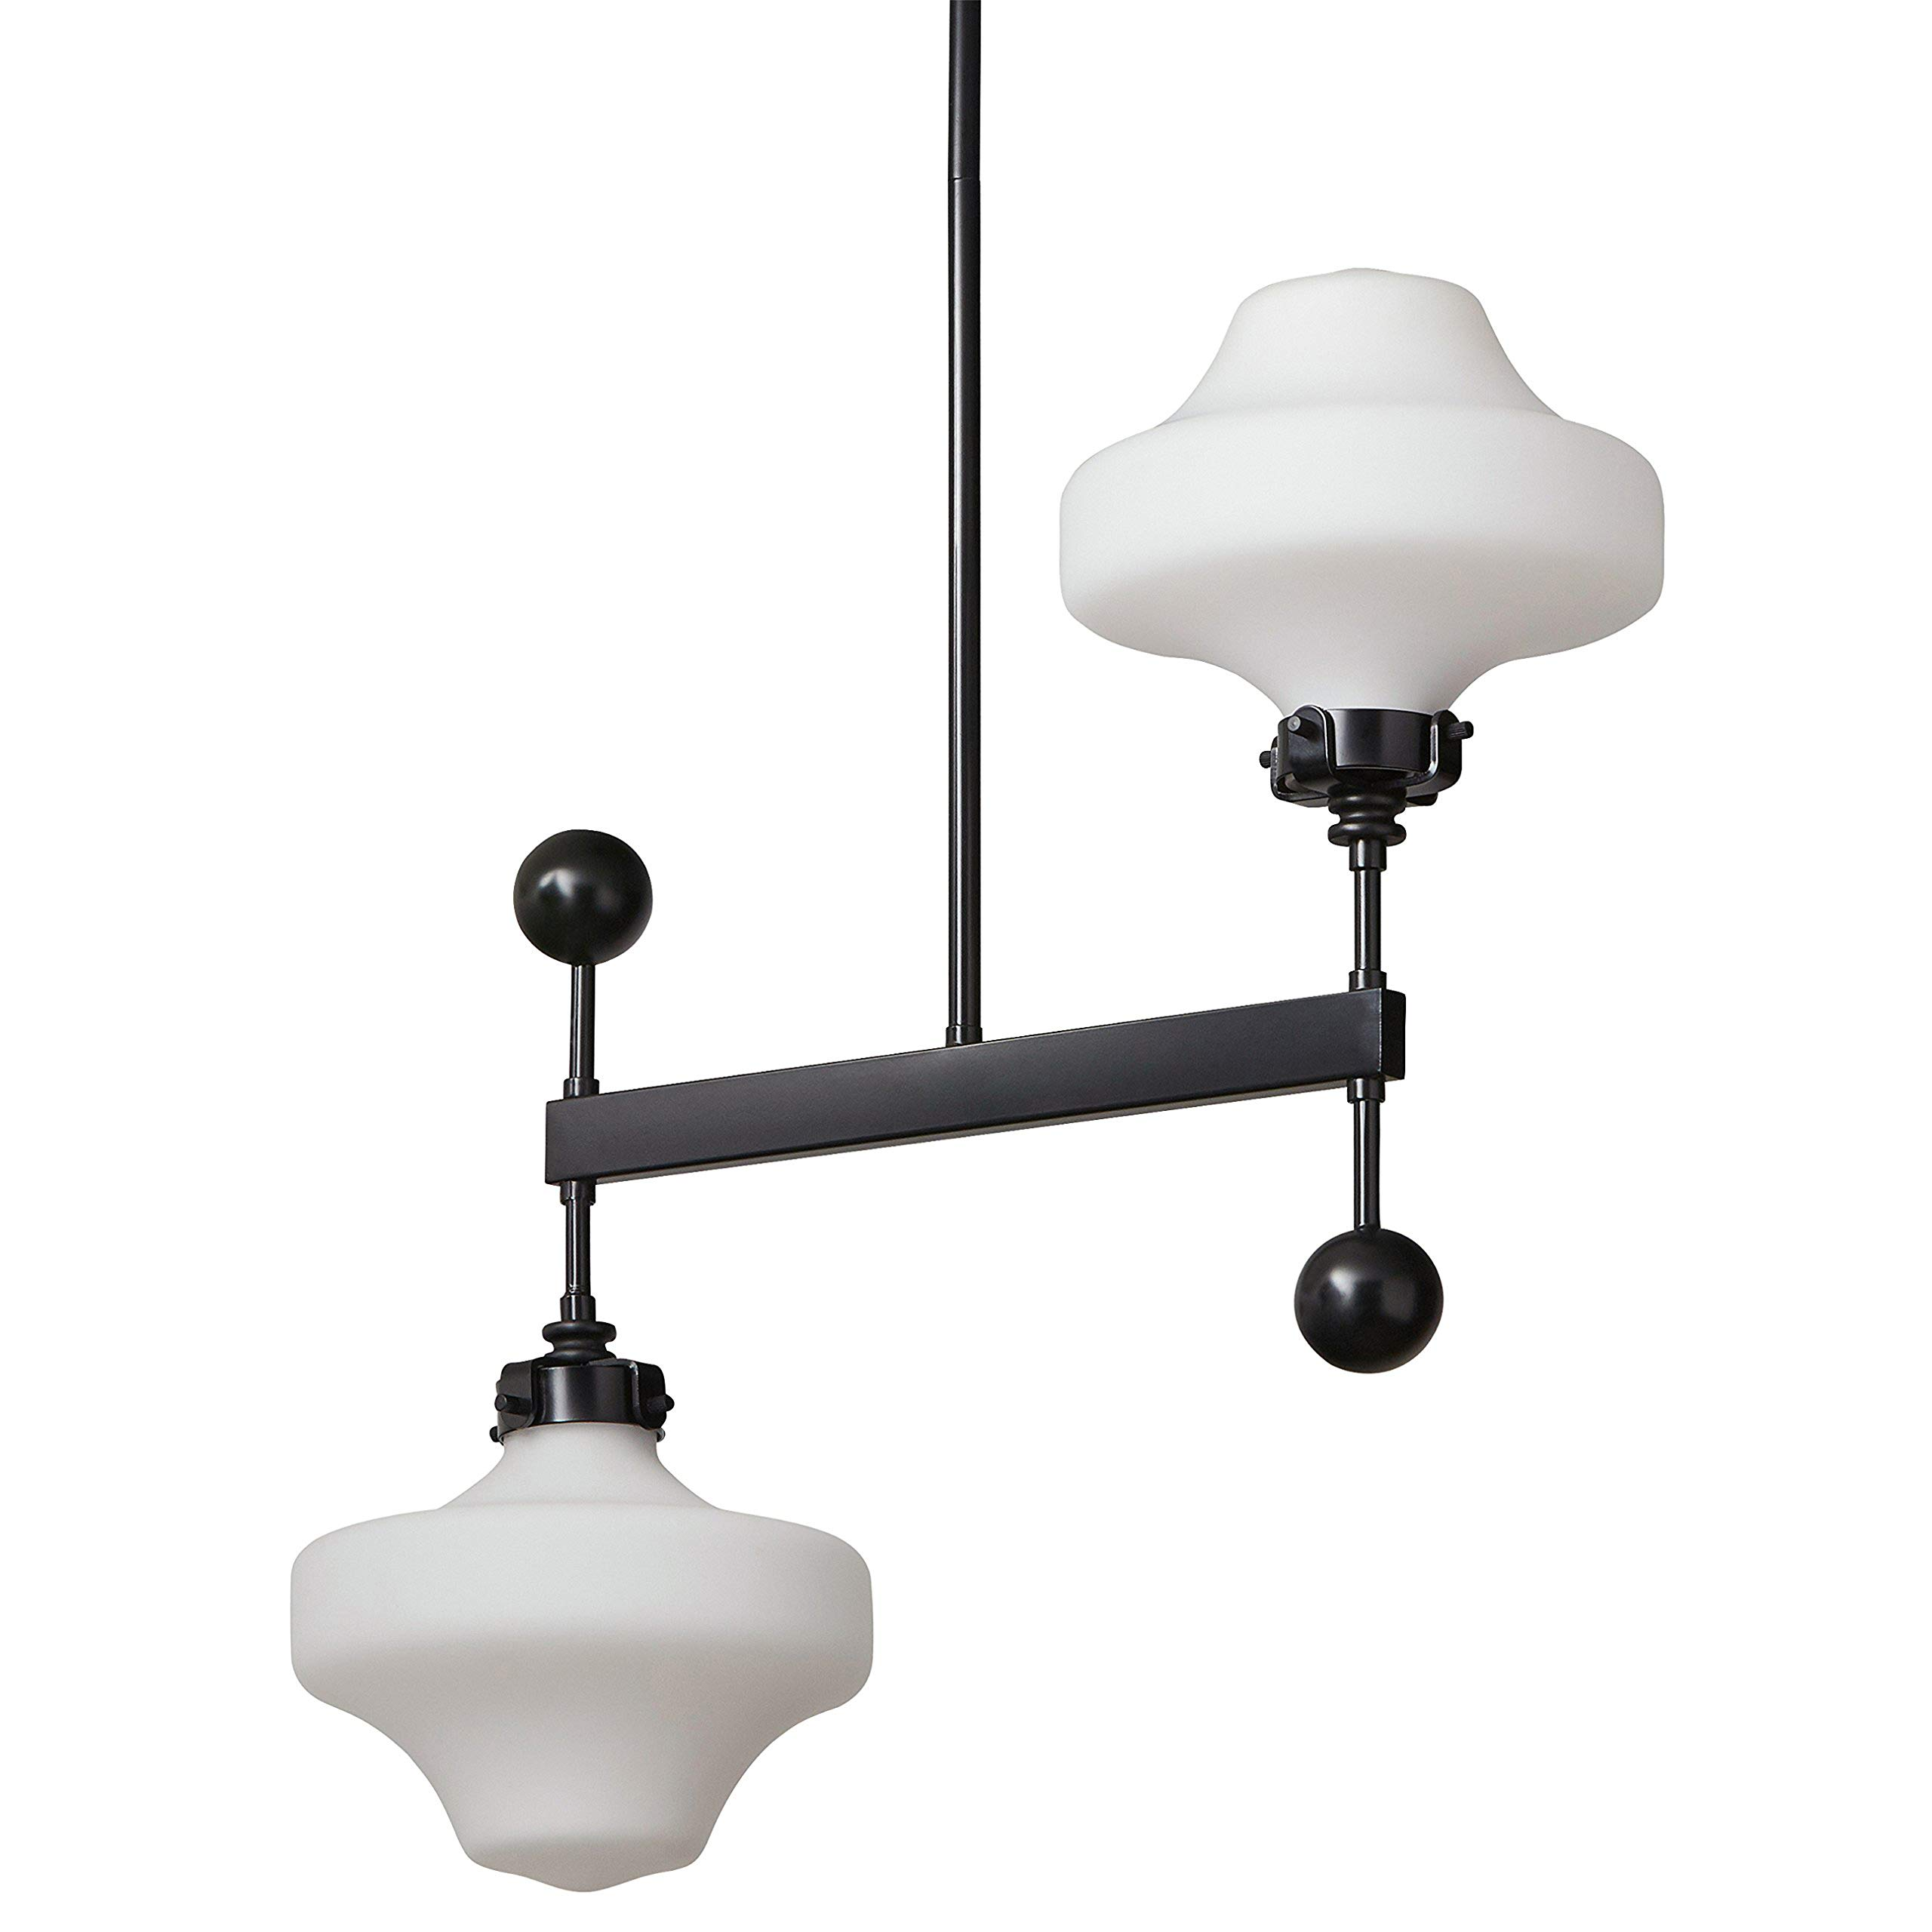 Amazon Brand Stone Beam Schoolhouse Ceiling Pendant Chandelier Fixture With 2 Light Bulbs With Glass Milk White Shade 21 X 8 X 53 Inches 42 Inch Cord Black Amazon Com